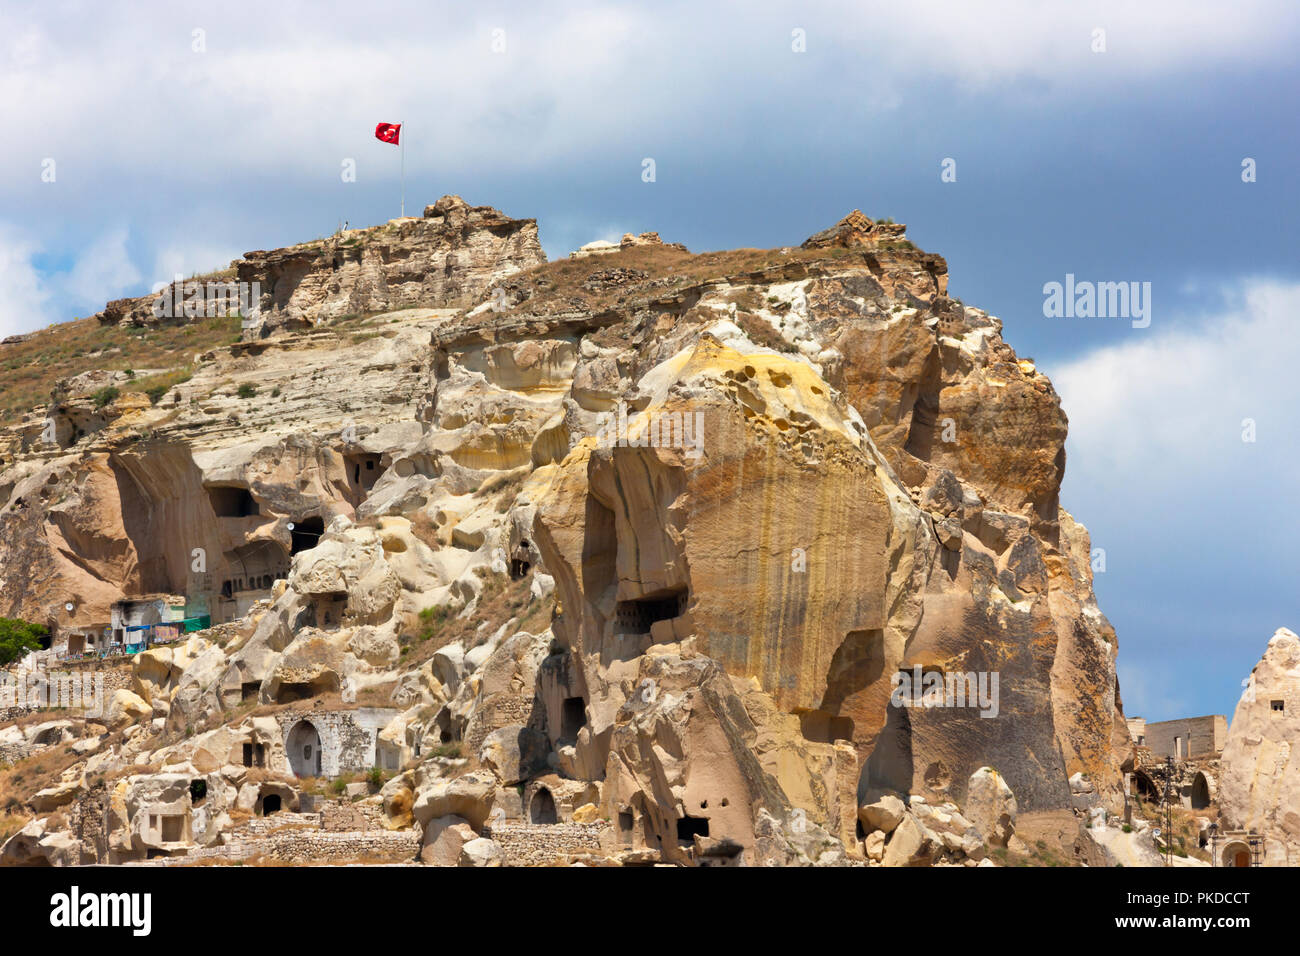 Houses carved into the rocks, Nevsehir, Central Anatolia, Turkey - Stock Image